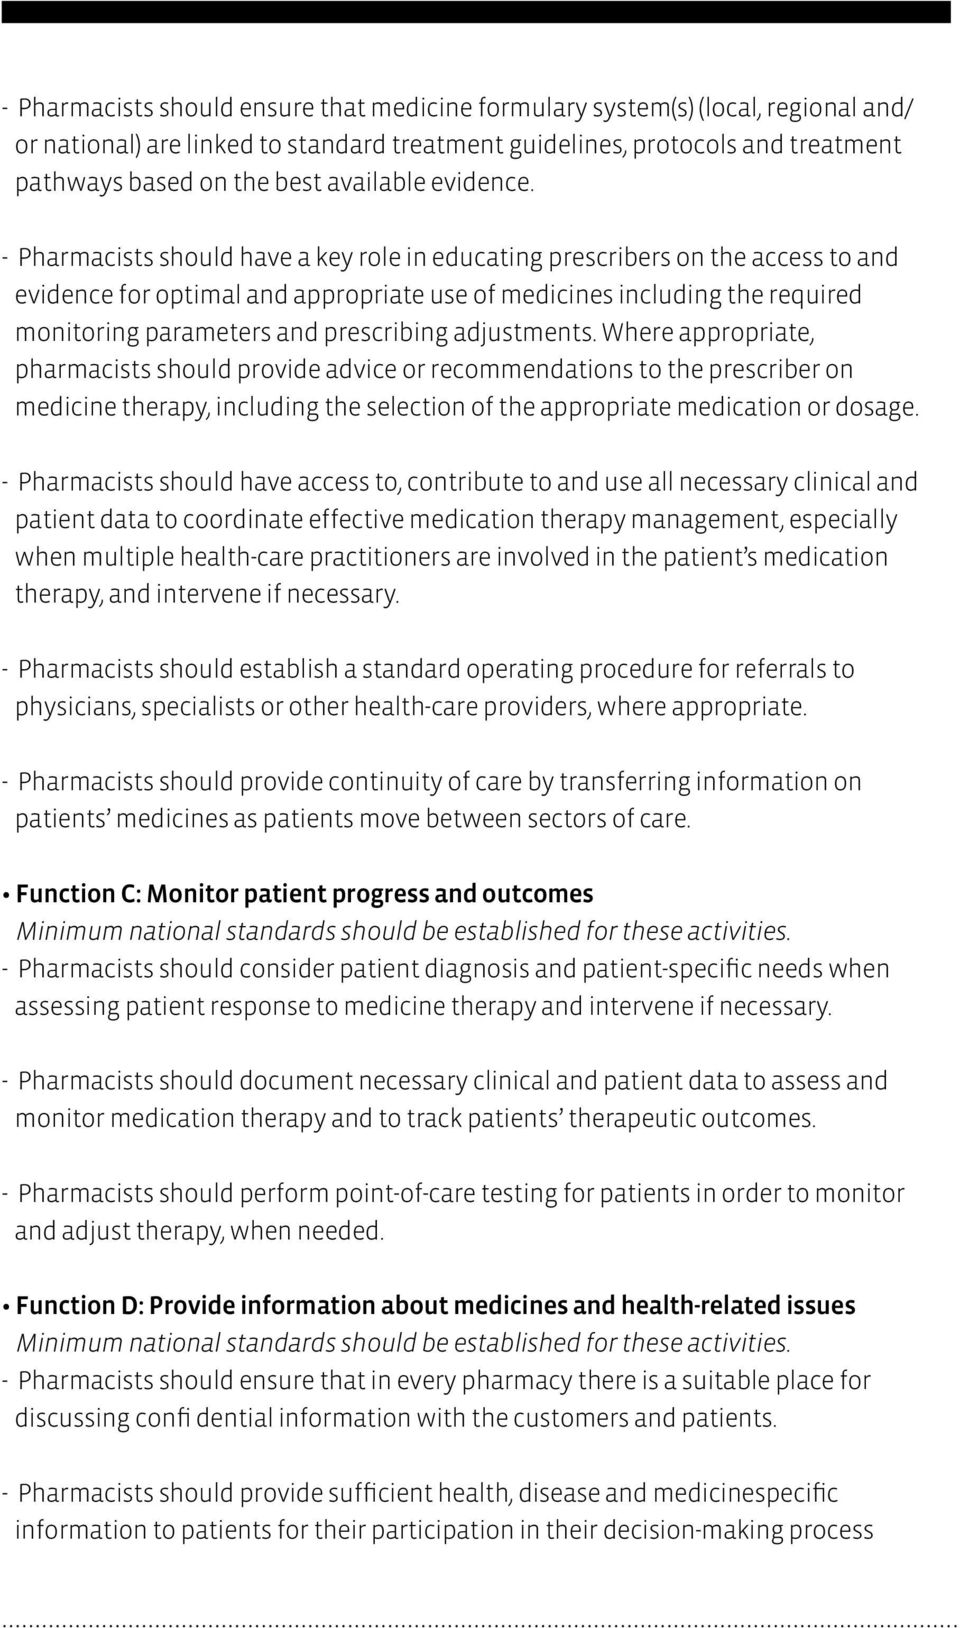 - Pharmacists should have a key role in educating prescribers on the access to and evidence for optimal and appropriate use of medicines including the required monitoring parameters and prescribing